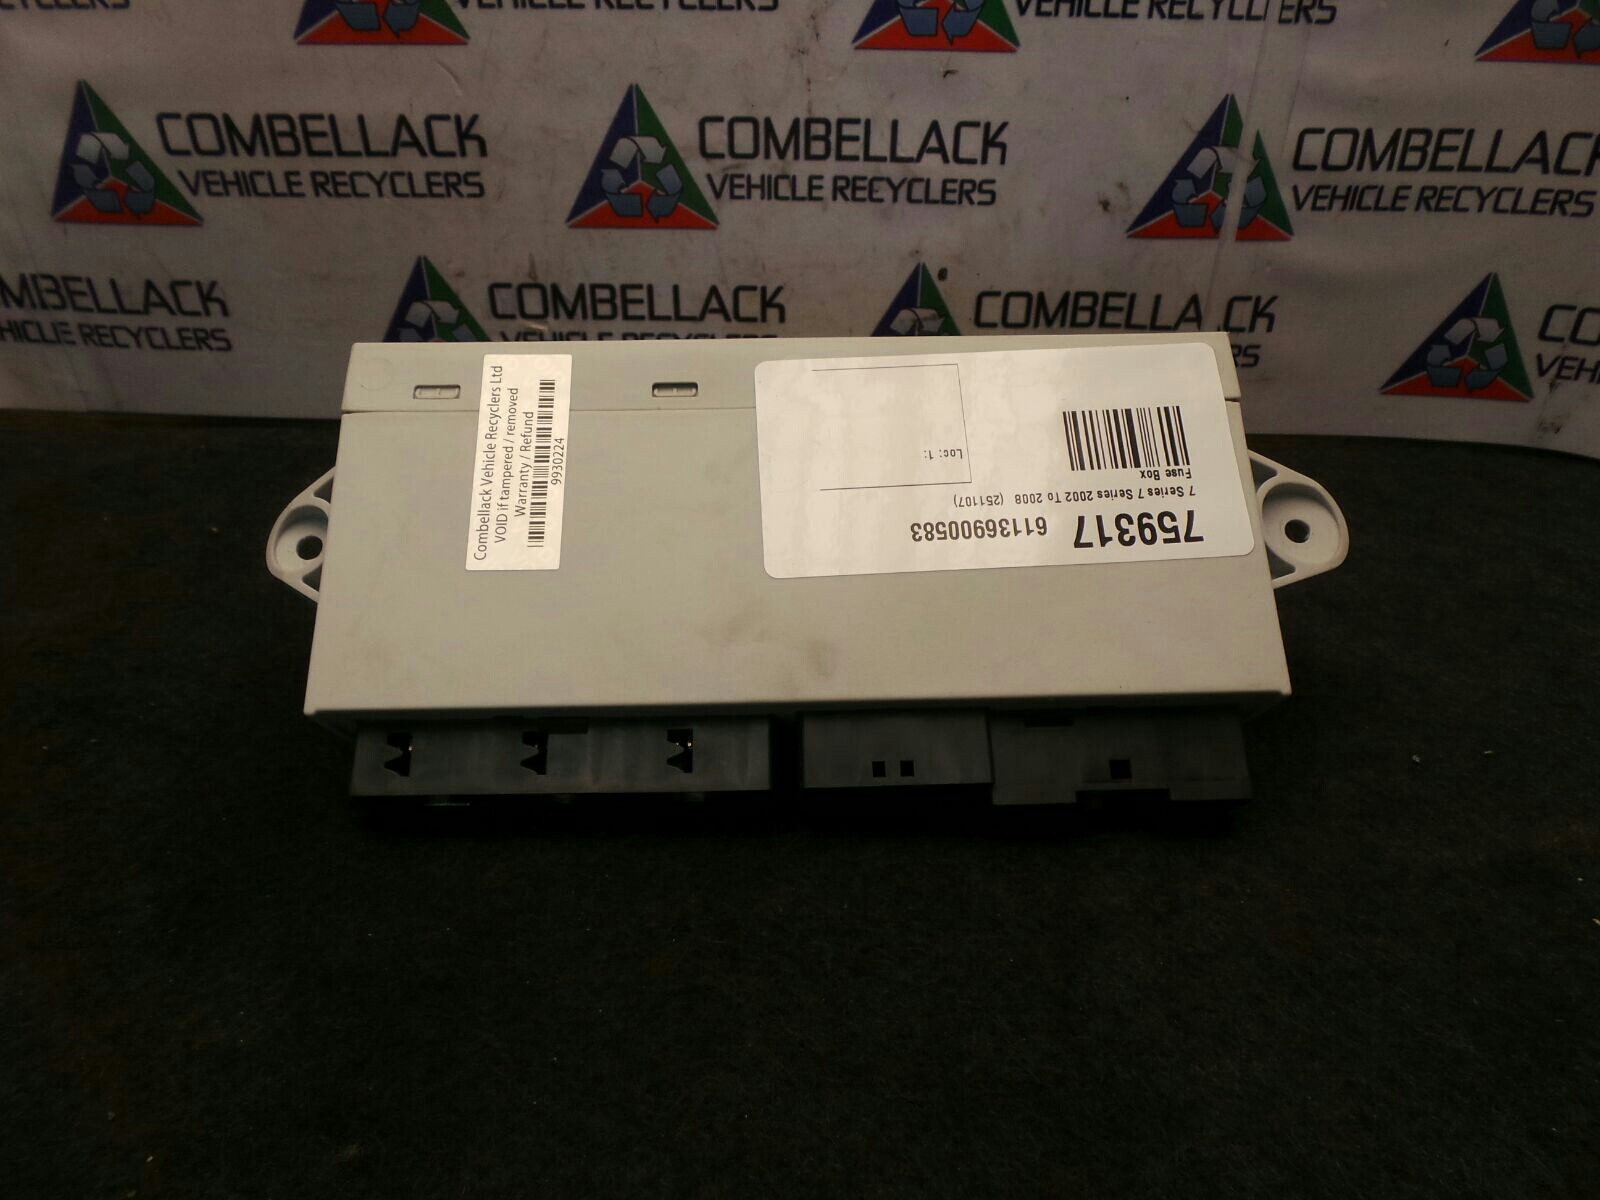 bmw 7 series 2002 to 2008 745i fuse box used and spare parts at cadillac escalade fuse diagram bmw 7 series 2002 to 2008 drivers o s right rear soft close control module